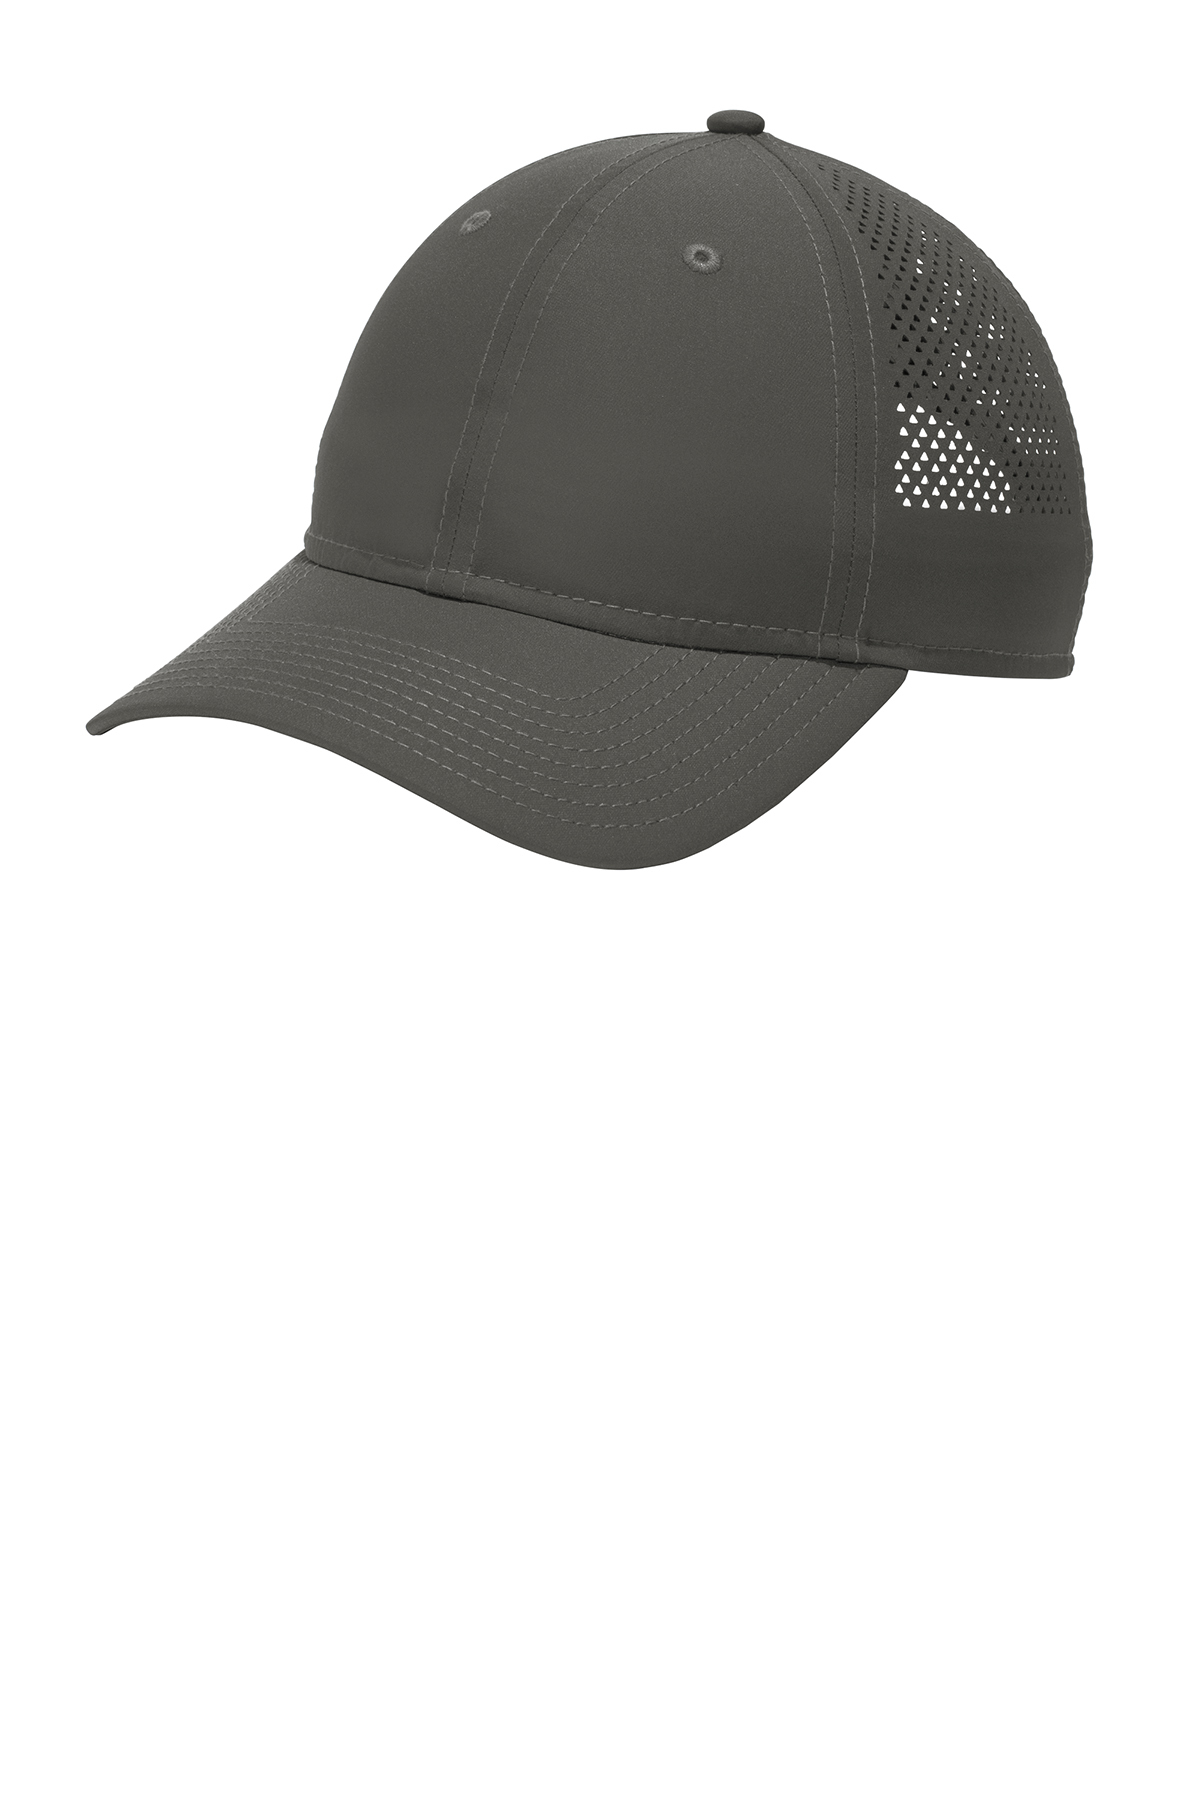 New Era NE406 - Perforated Performance Cap